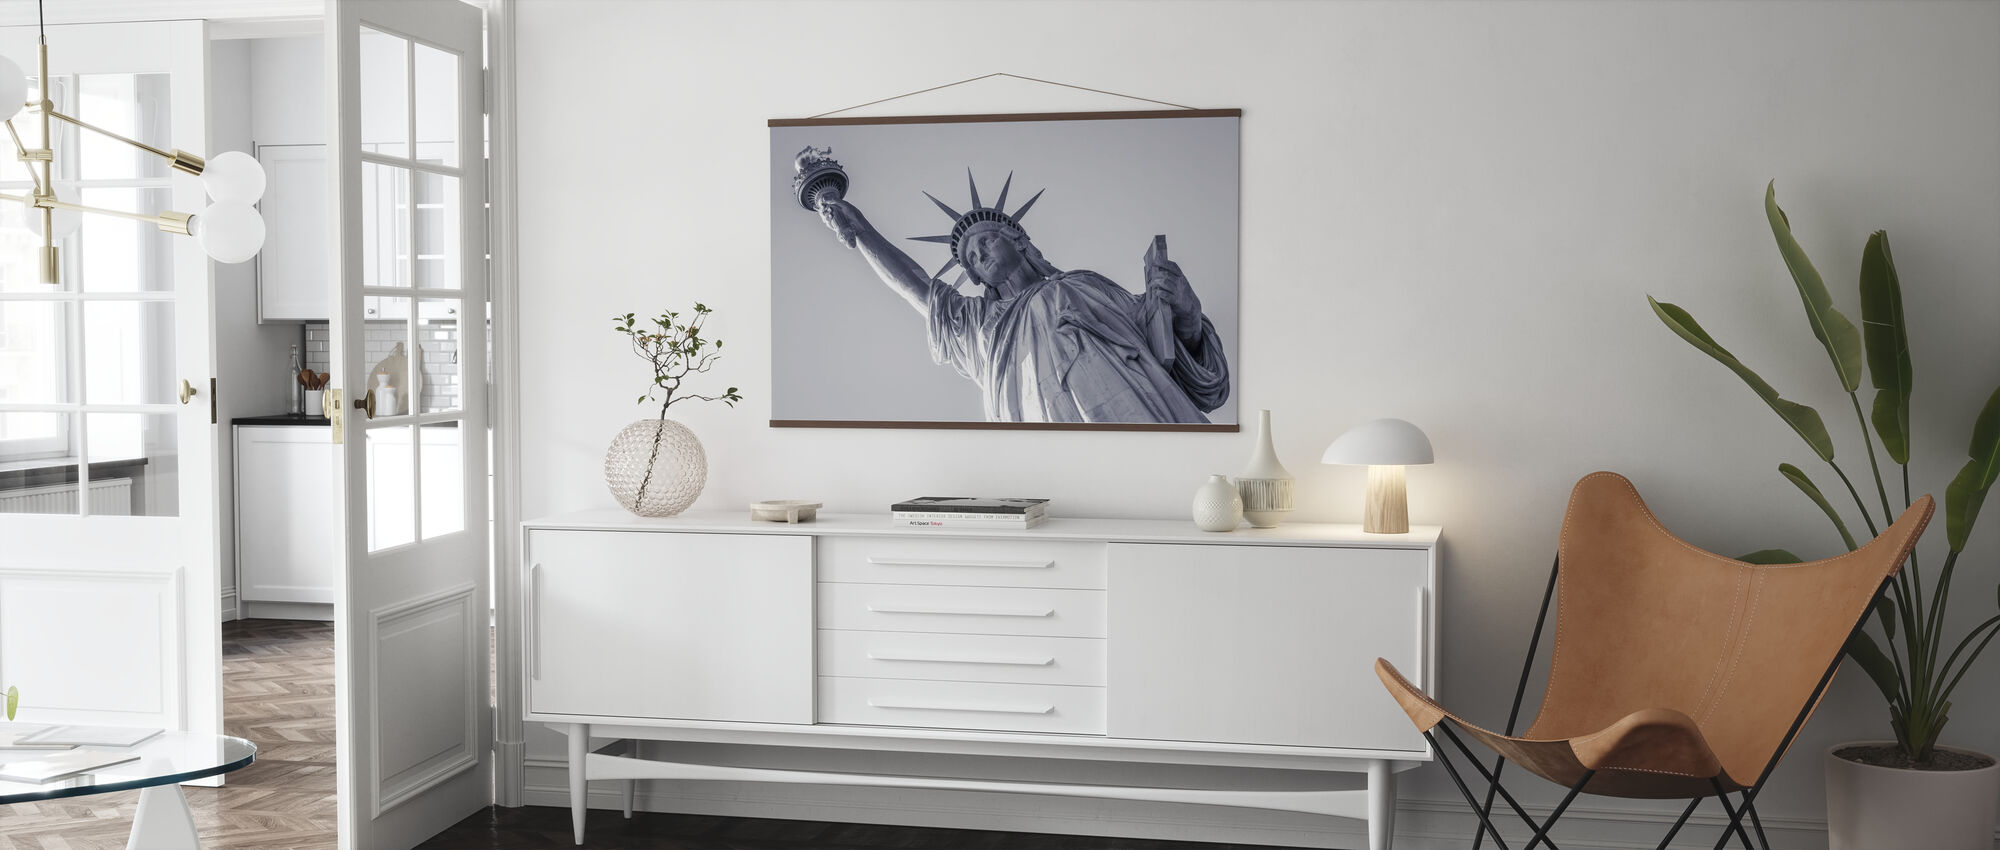 Statue of Liberty - Poster - Living Room